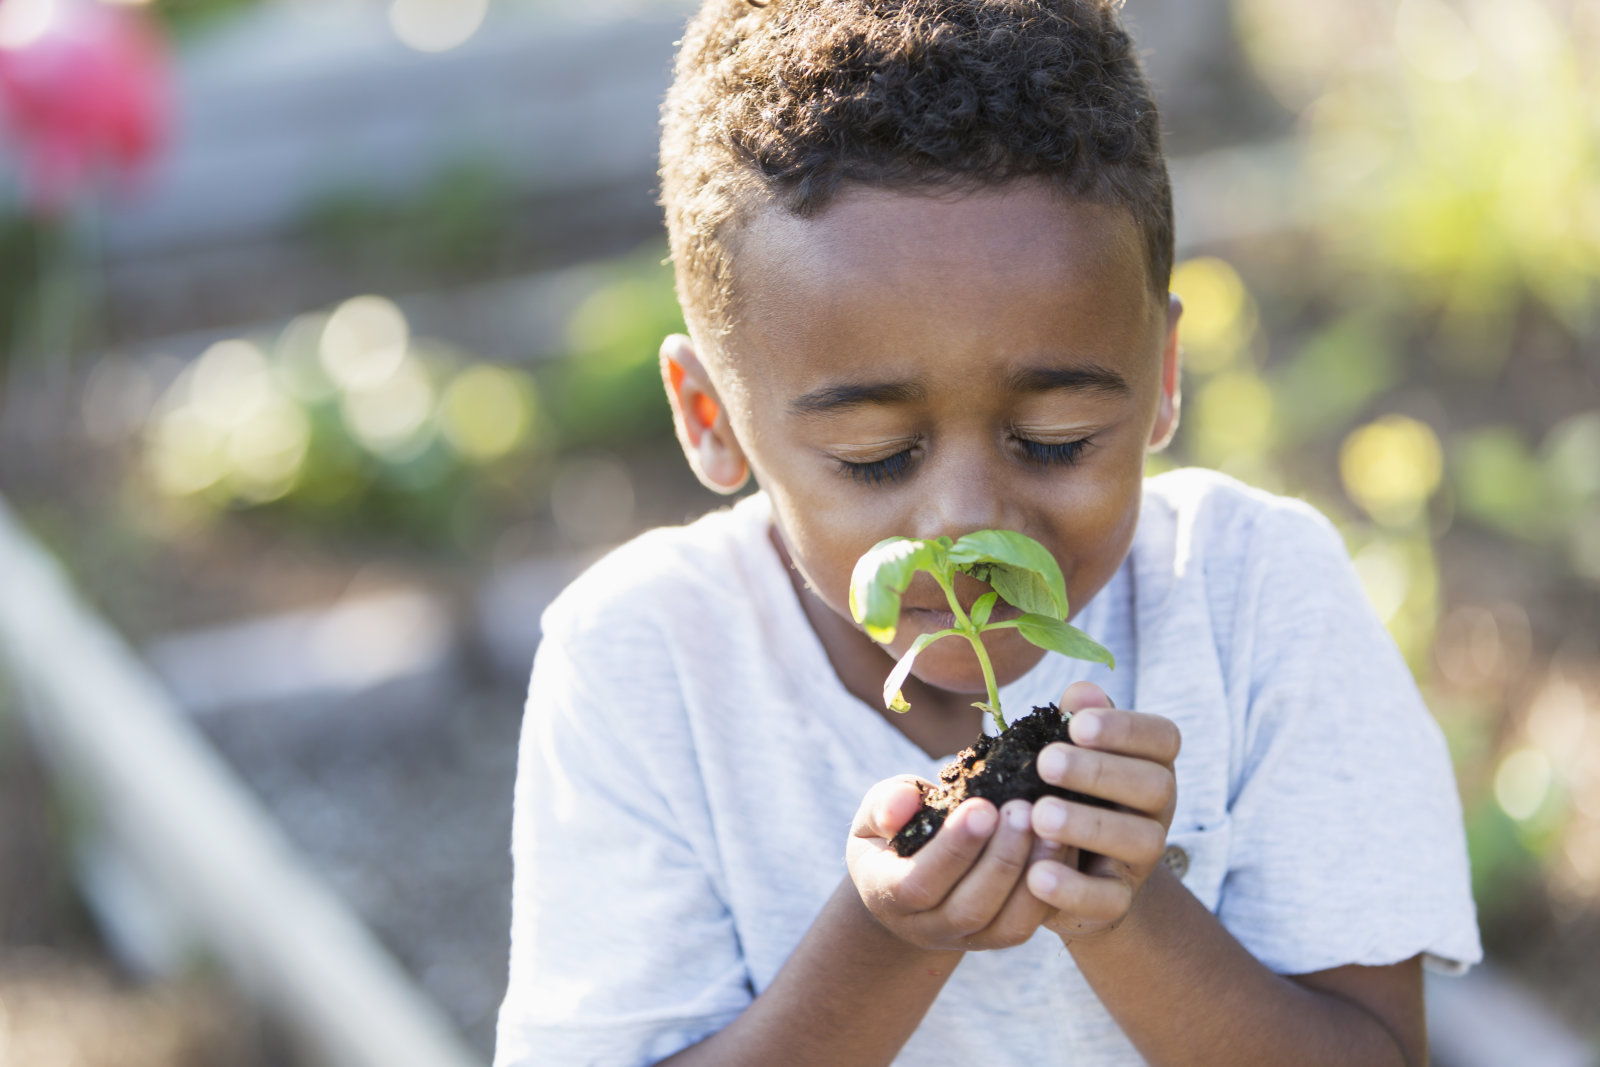 Little boy (5 years) in community garden, smelling fresh herb plant.